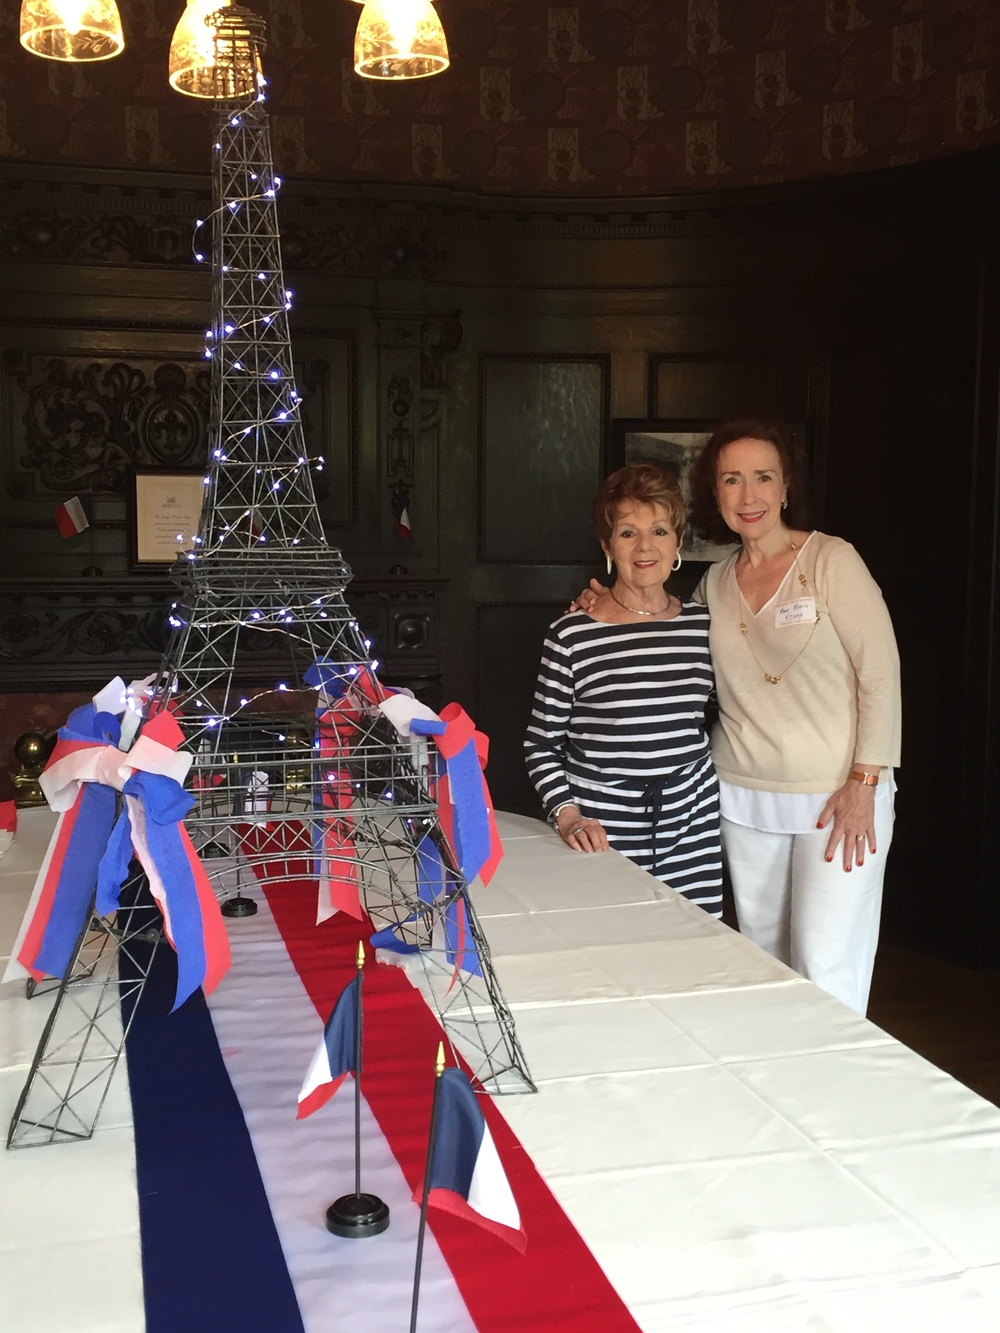 AFO Member Mary Mitchell & Anne Marie Kenny, AFO President showing off our beautiful table decor.  Thanks, Mary!